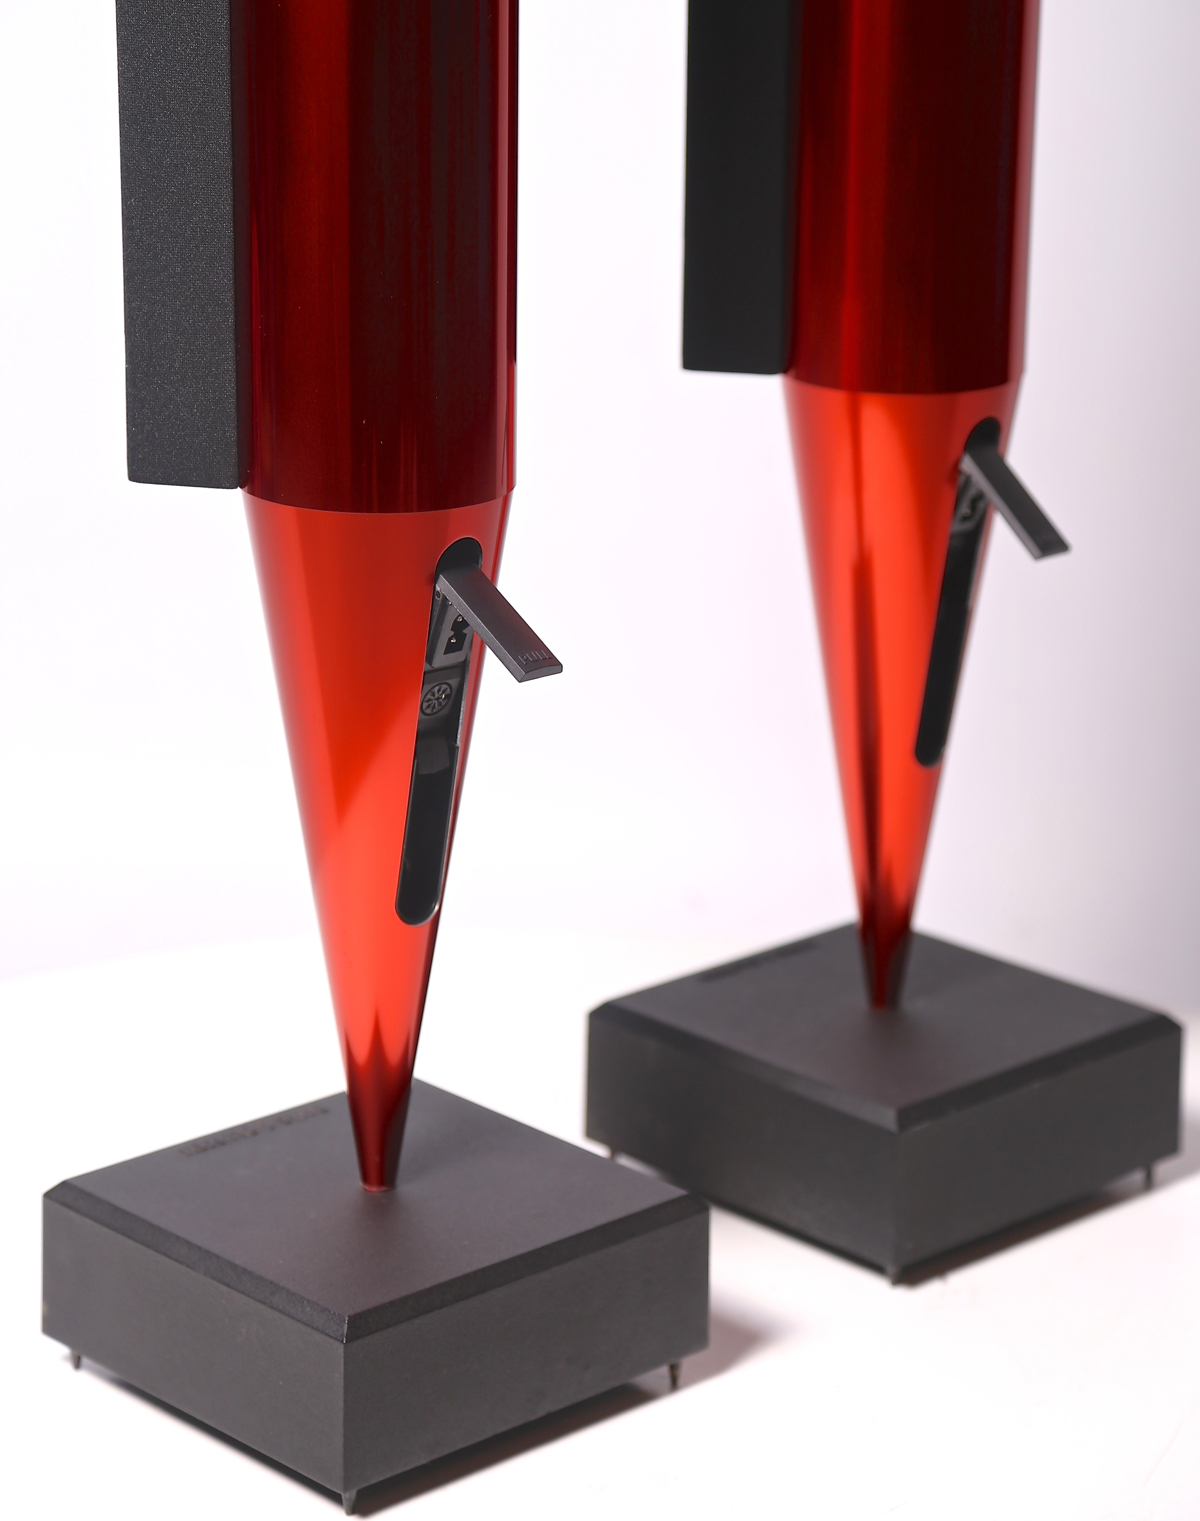 BeoLab 8000 Red Speakers